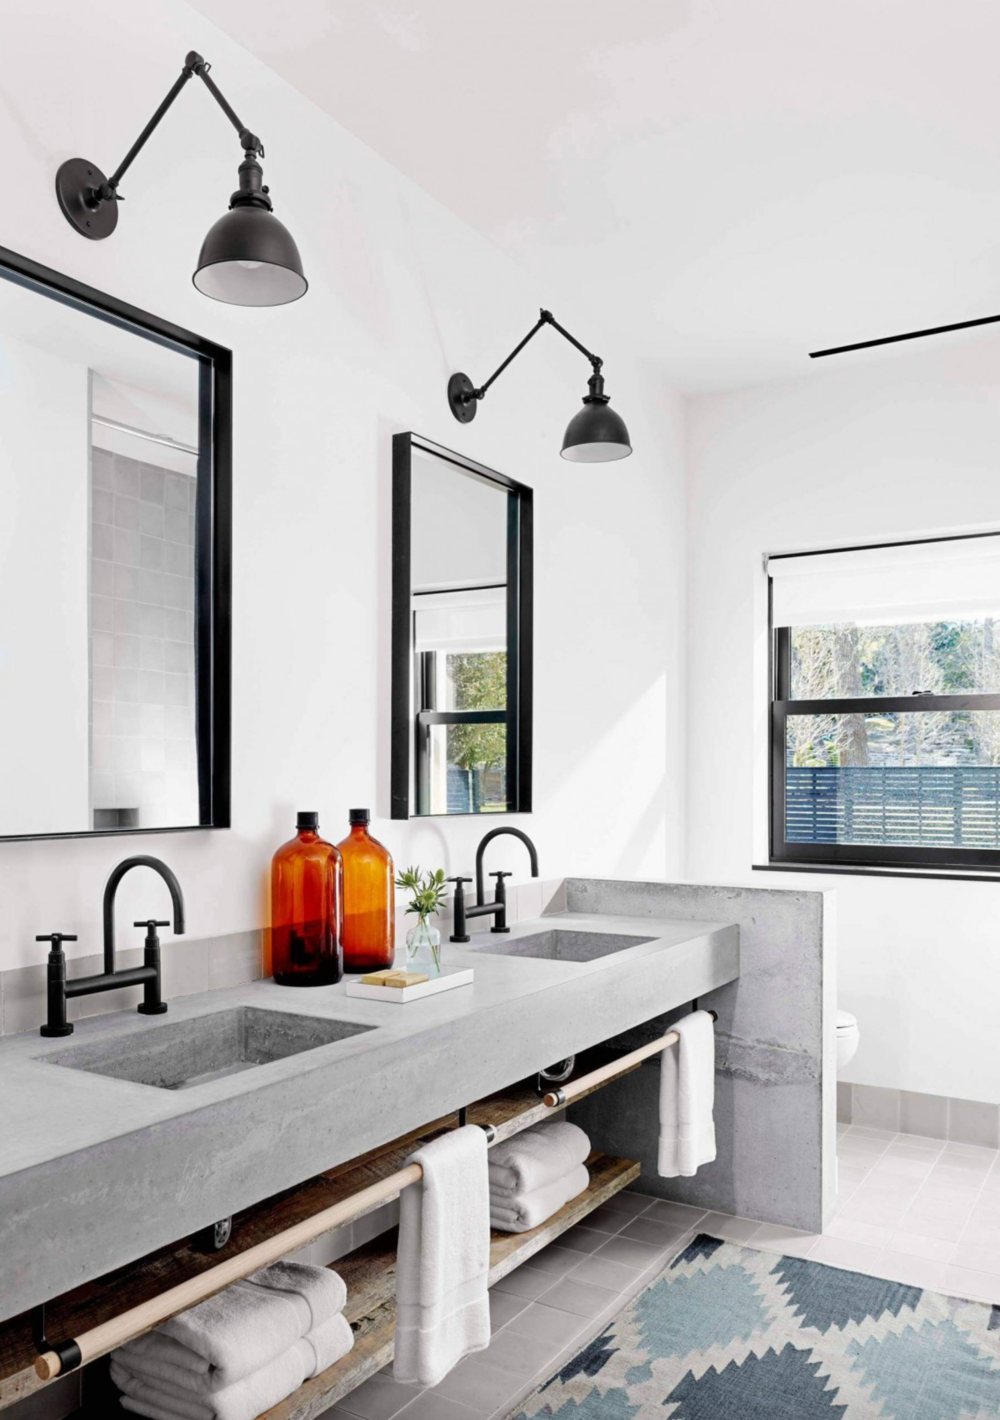 Image:  Casey Dunn  for  Aamodt/Plumb Architects  and  Bella Mancini Design